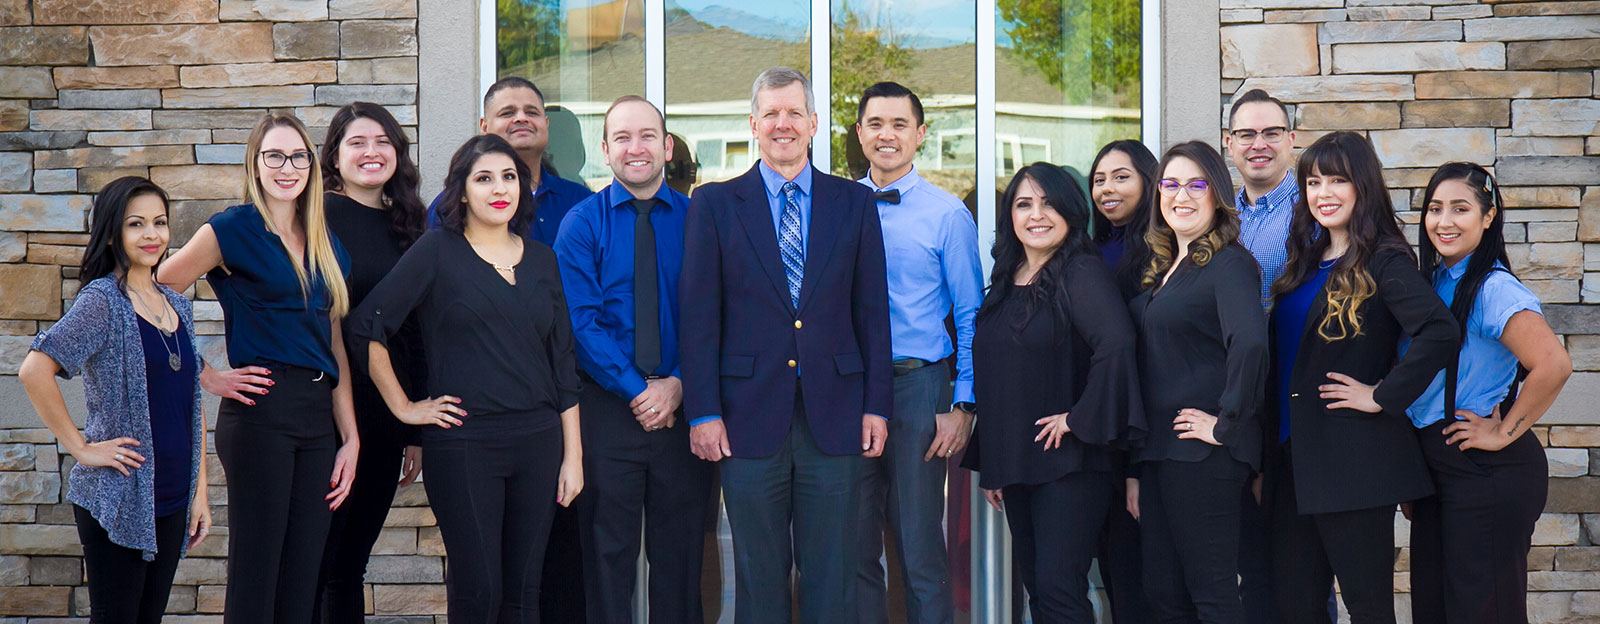 Fontana Optometric Group and Optometric Group of Upland Staff